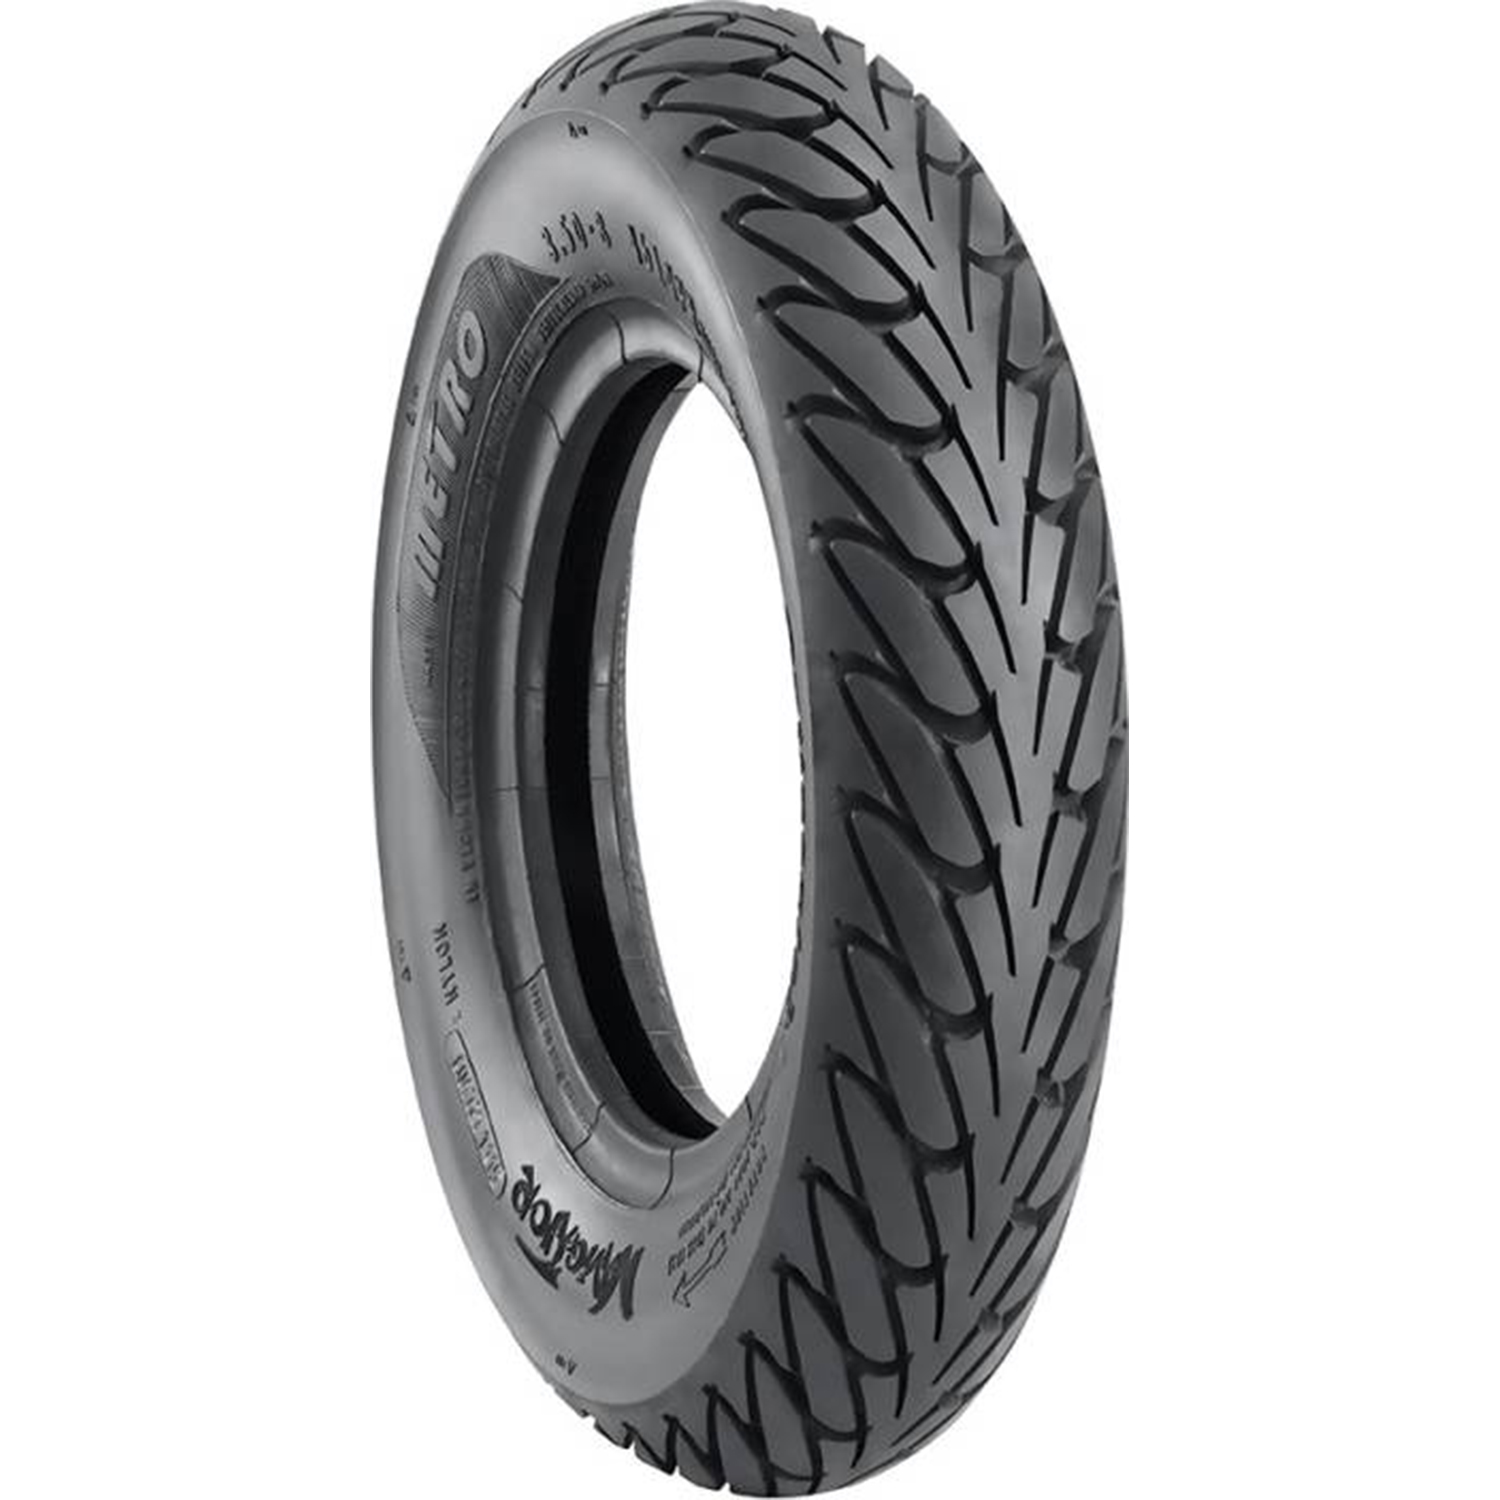 Metro NAVIGATOR 3.50 8 Requires Tube Front/Rear Two-Wheeler Tyre